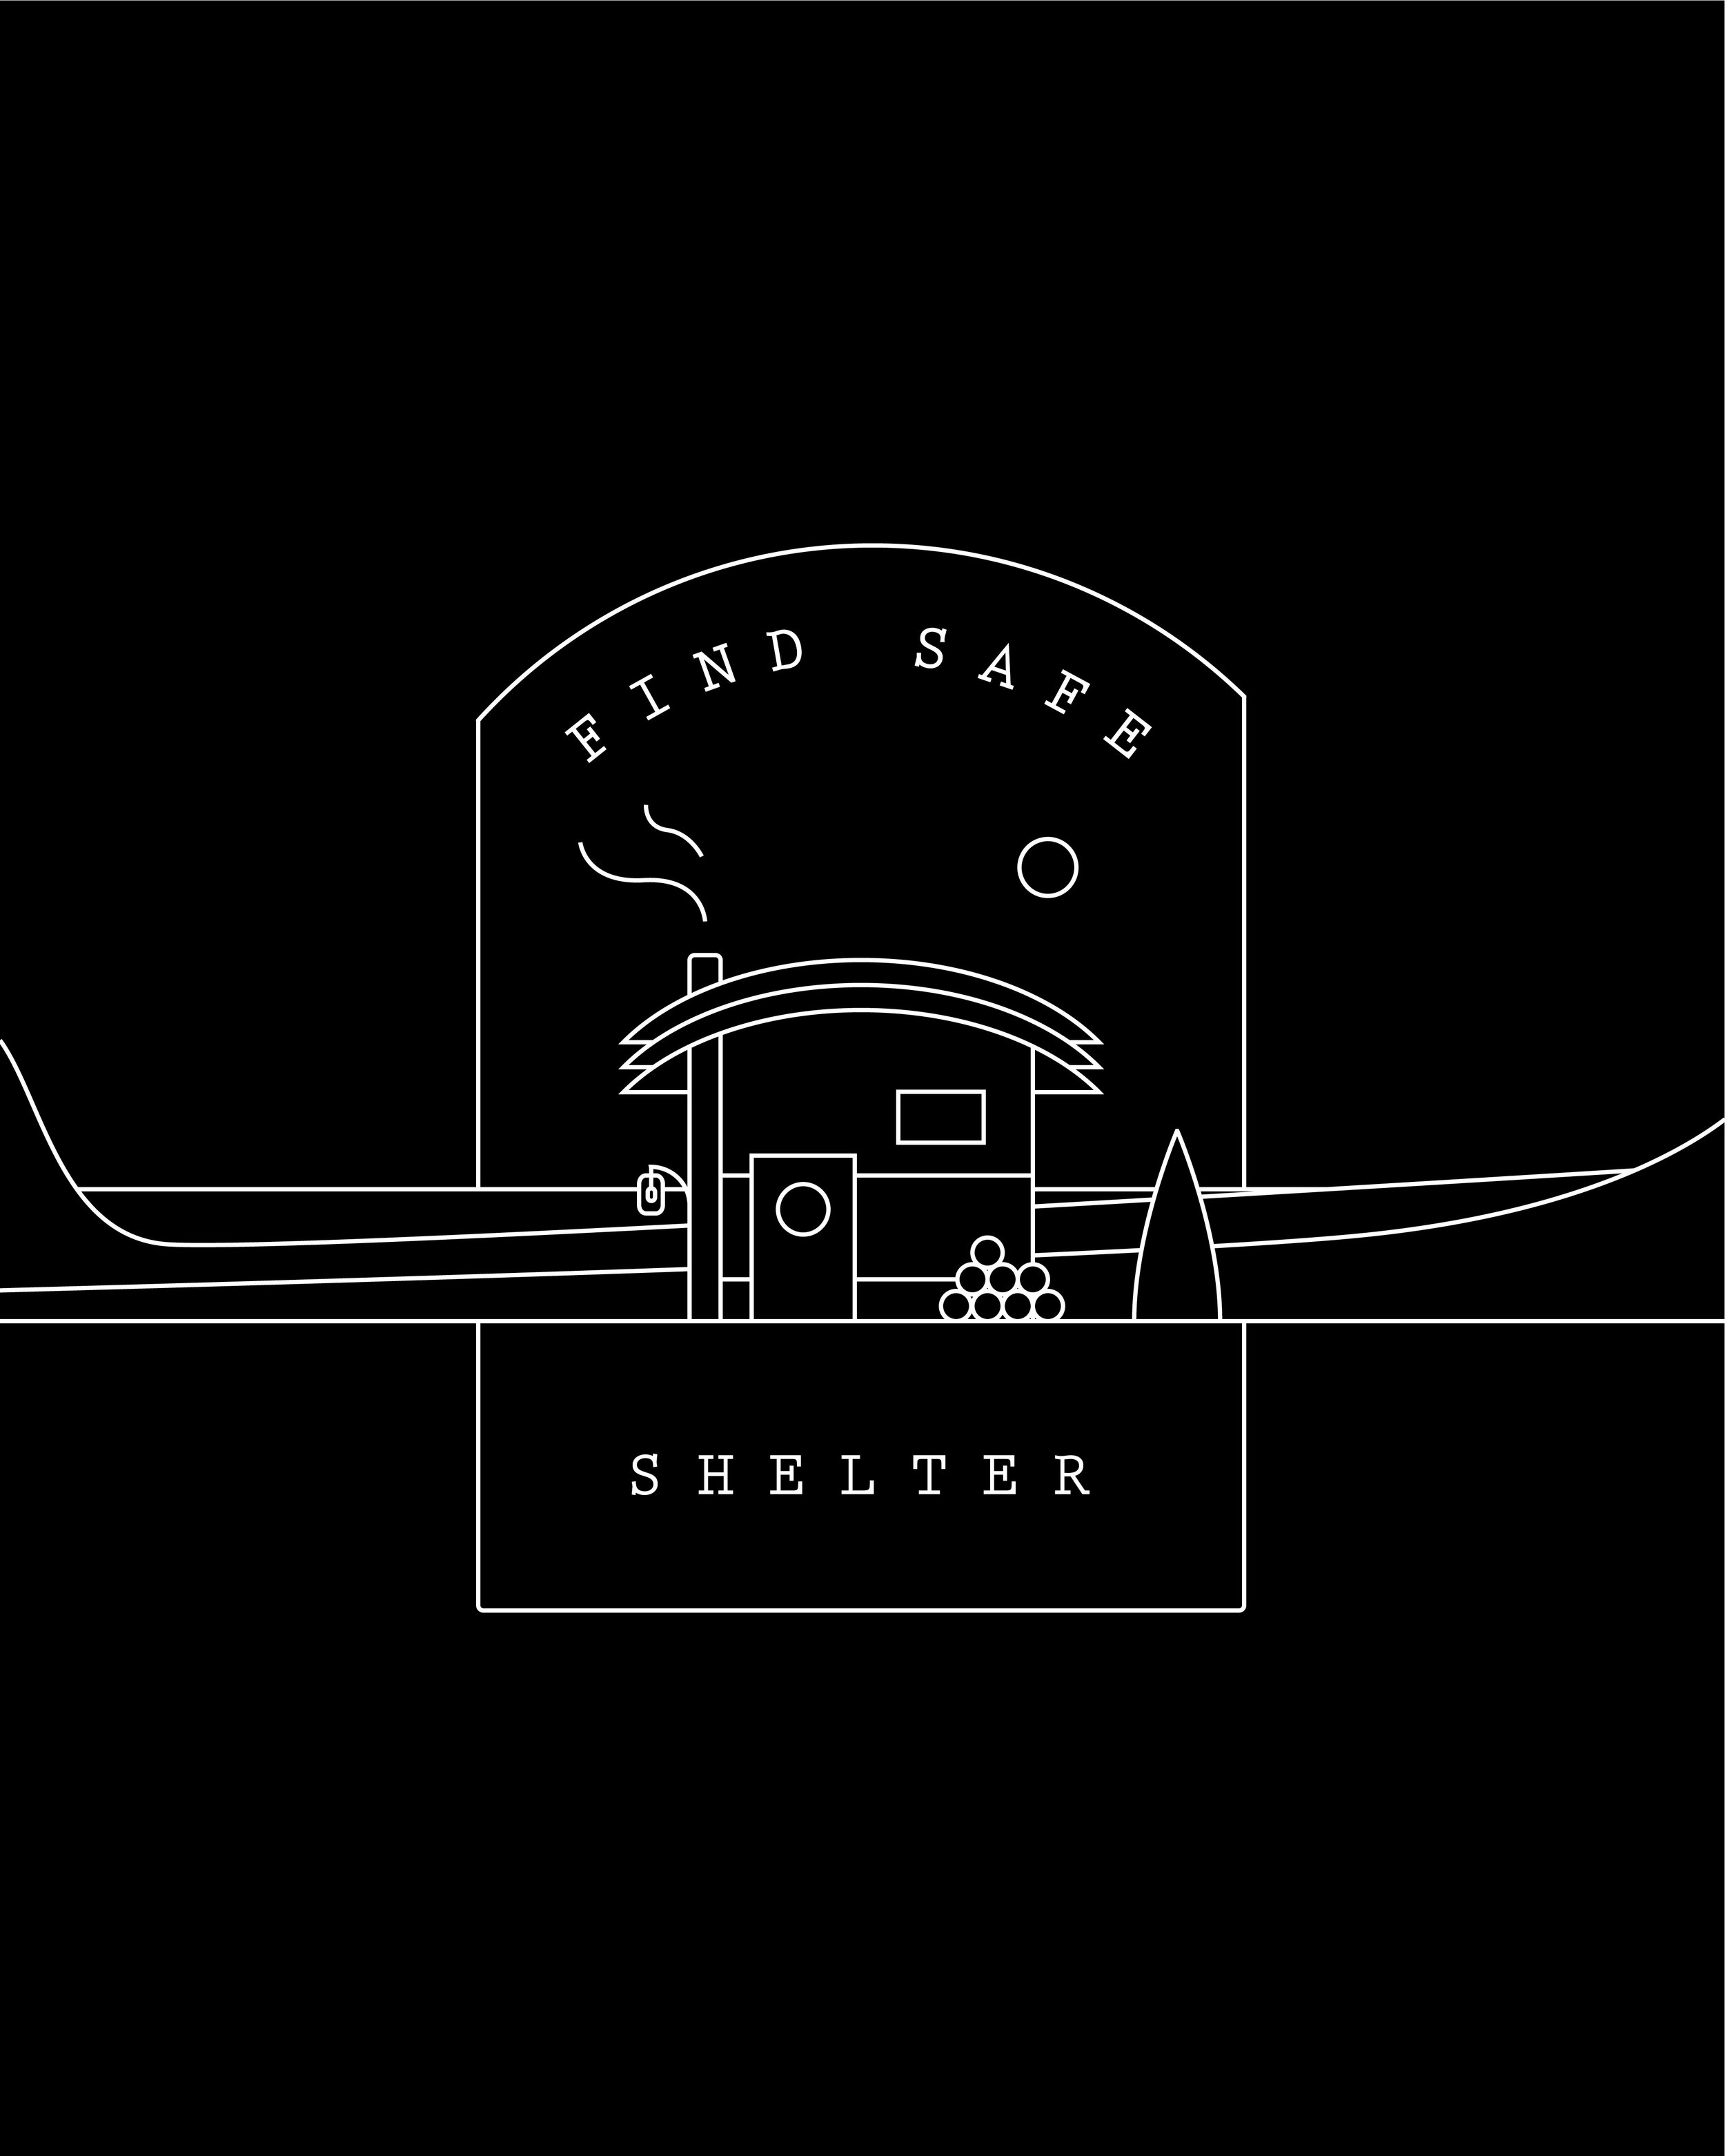 Find-Safe-Shelter.jpg